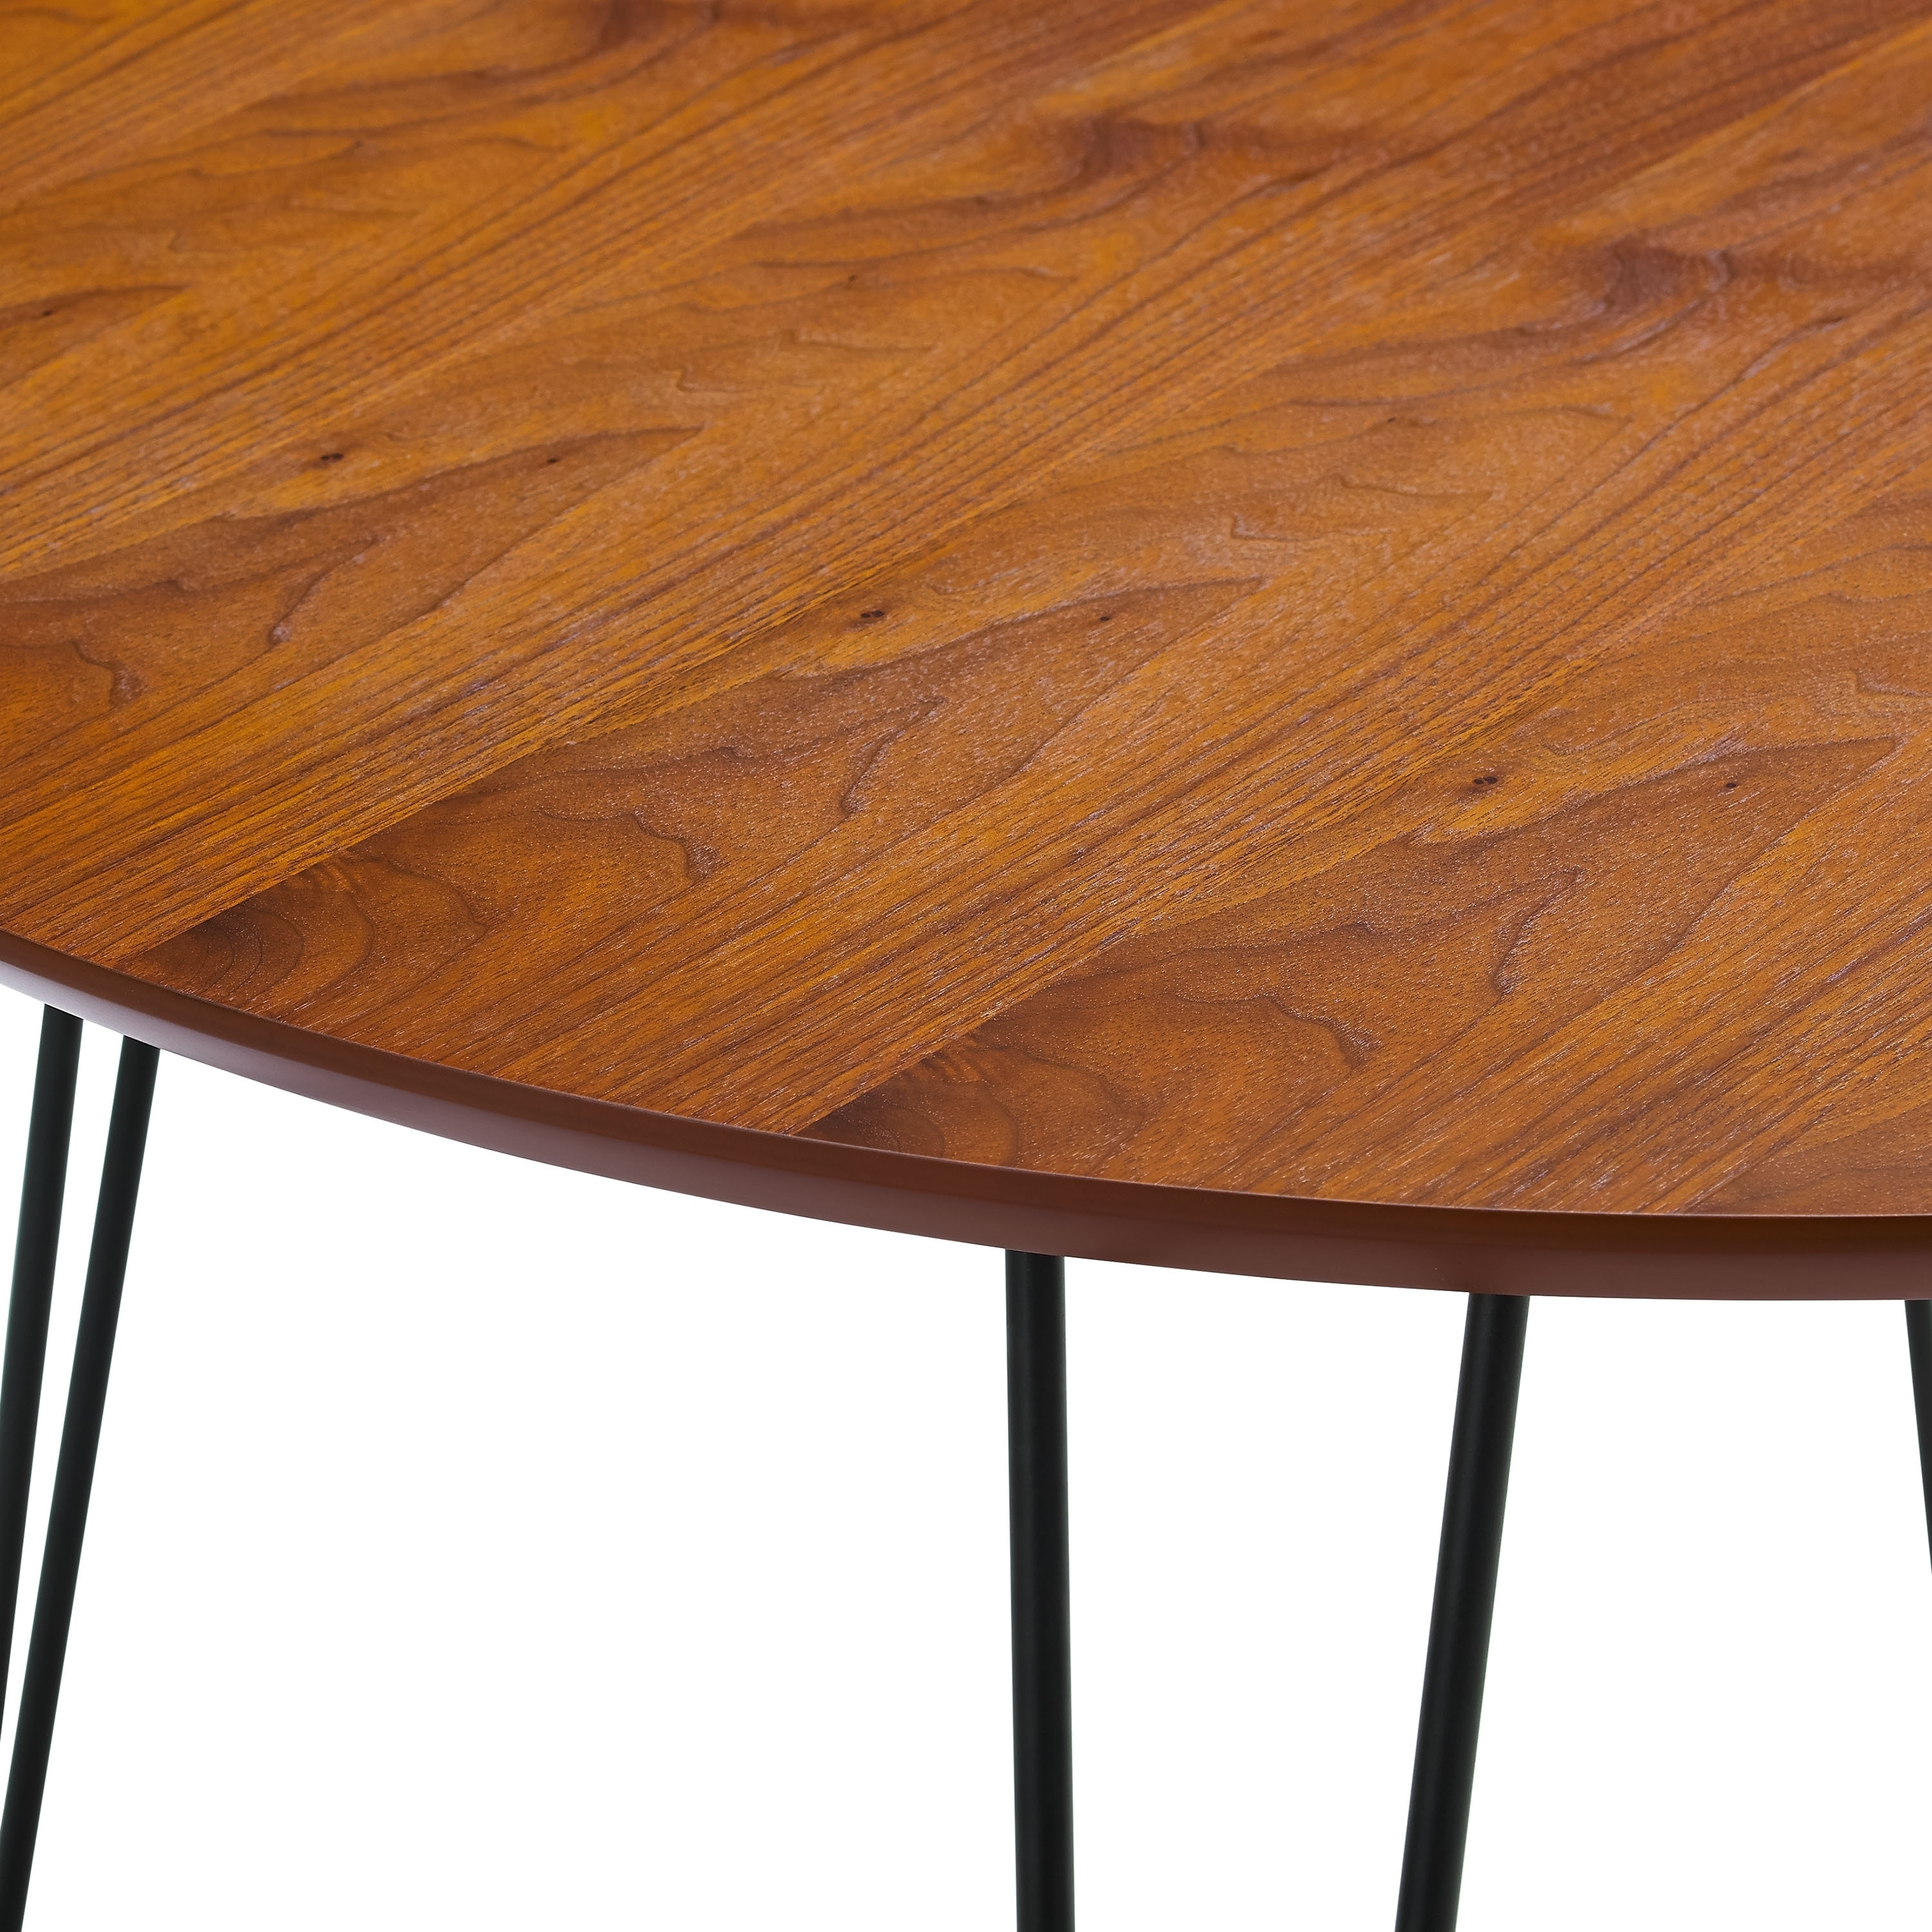 46-inch Round Hairpin Leg Walnut Dining Table - Free Shipping Today -  Overstock.com - 25396532